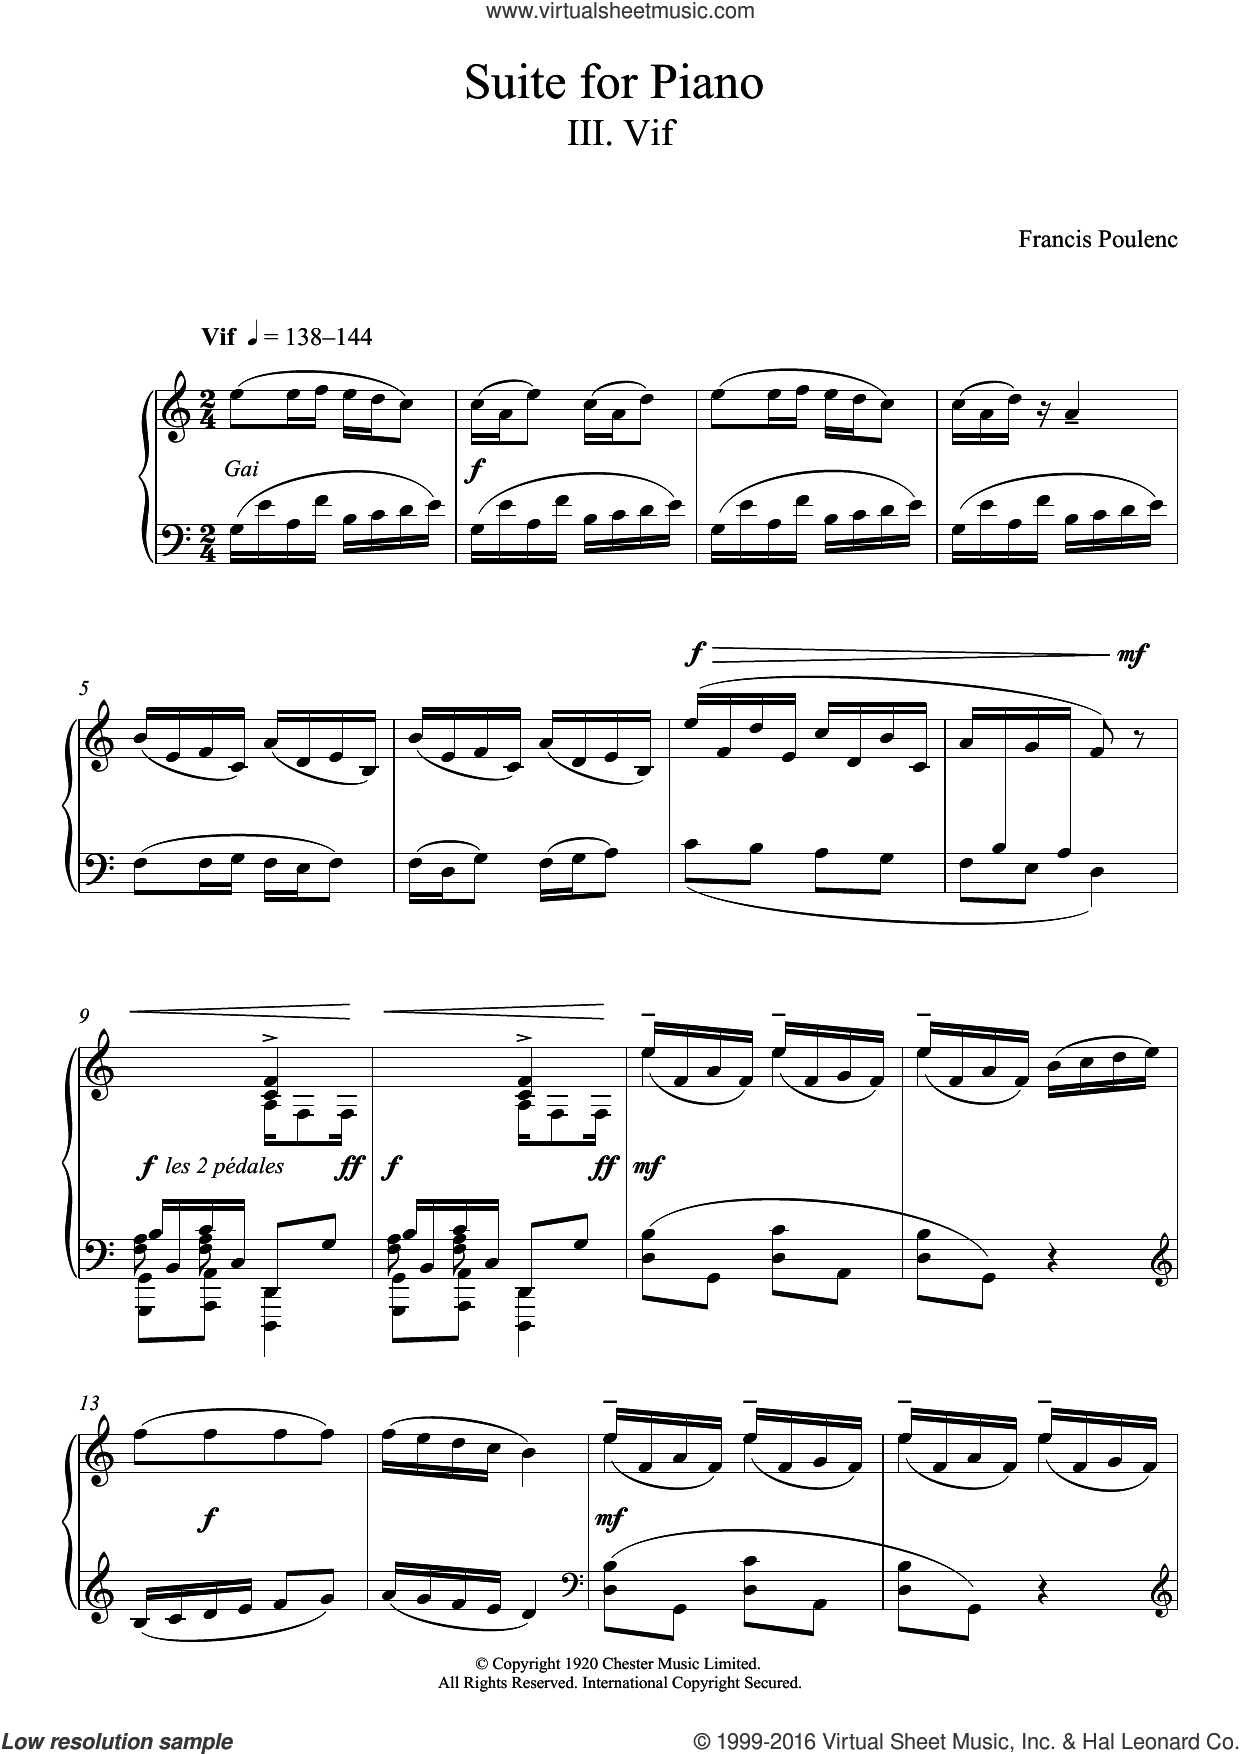 Suite for Piano - III. Vif sheet music for piano solo by Francis Poulenc. Score Image Preview.